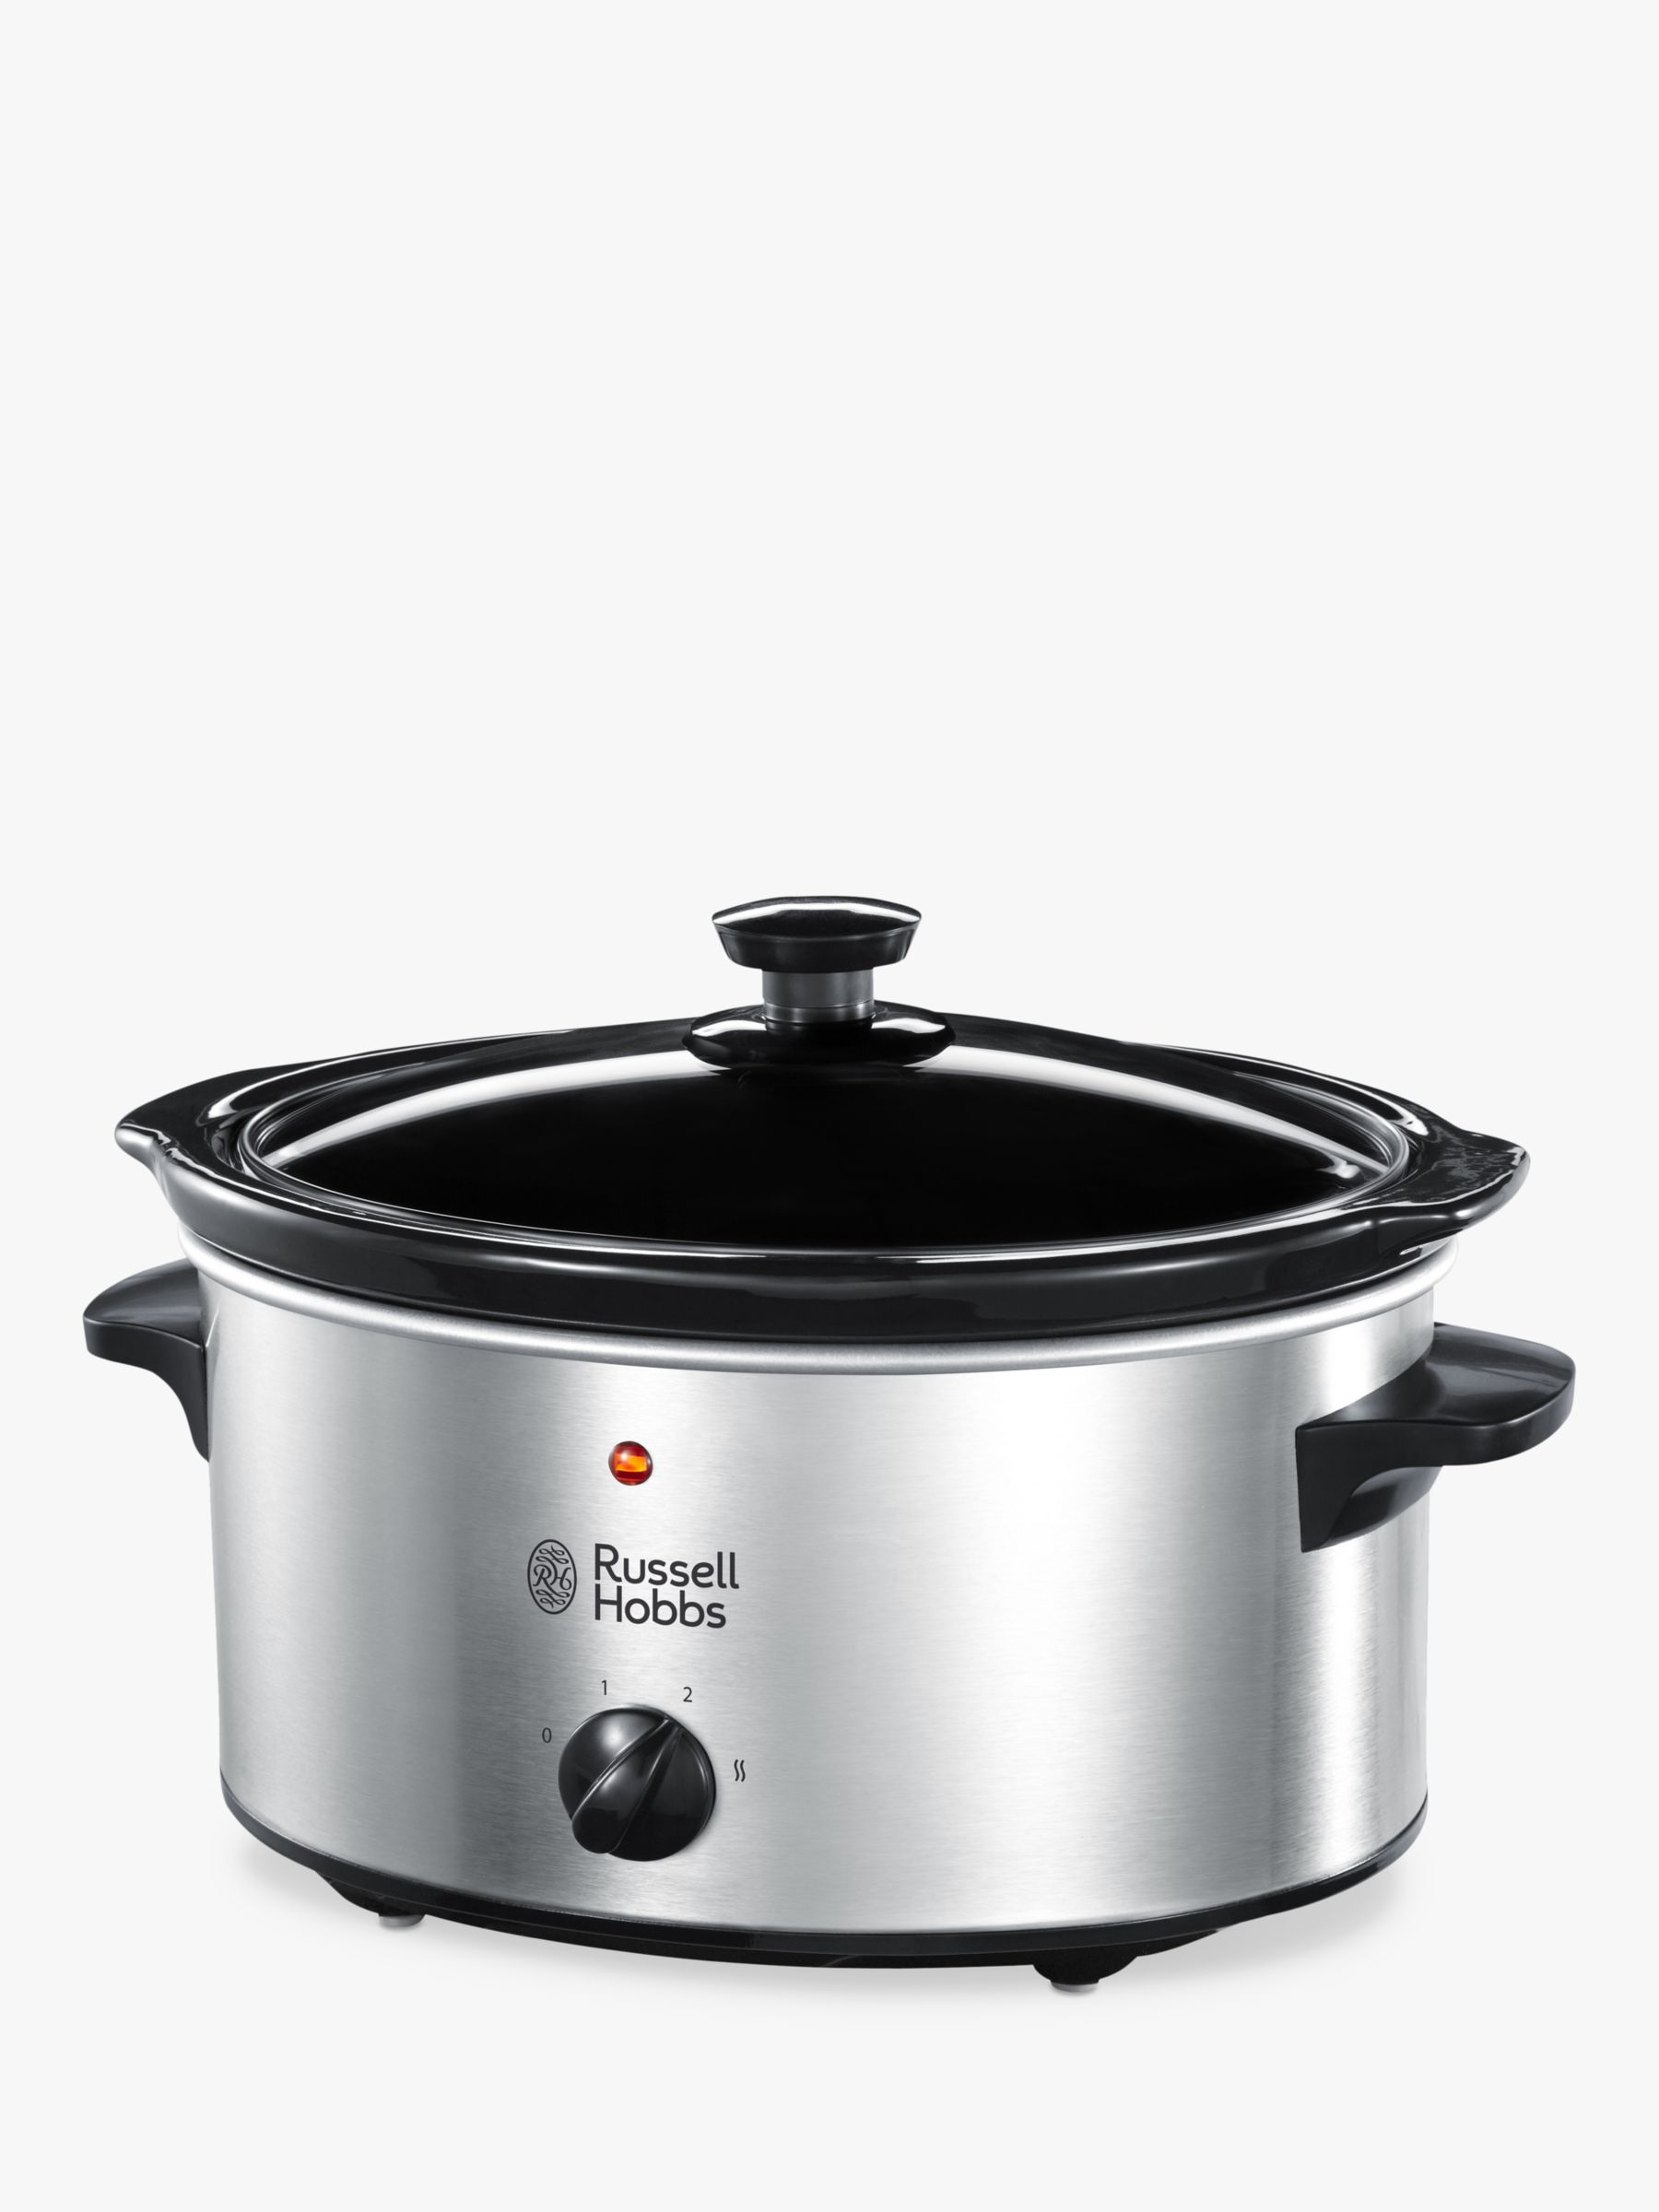 Russell Hobbs Russell Hobbs 3.5L Slow Cooker, Stainless Steel